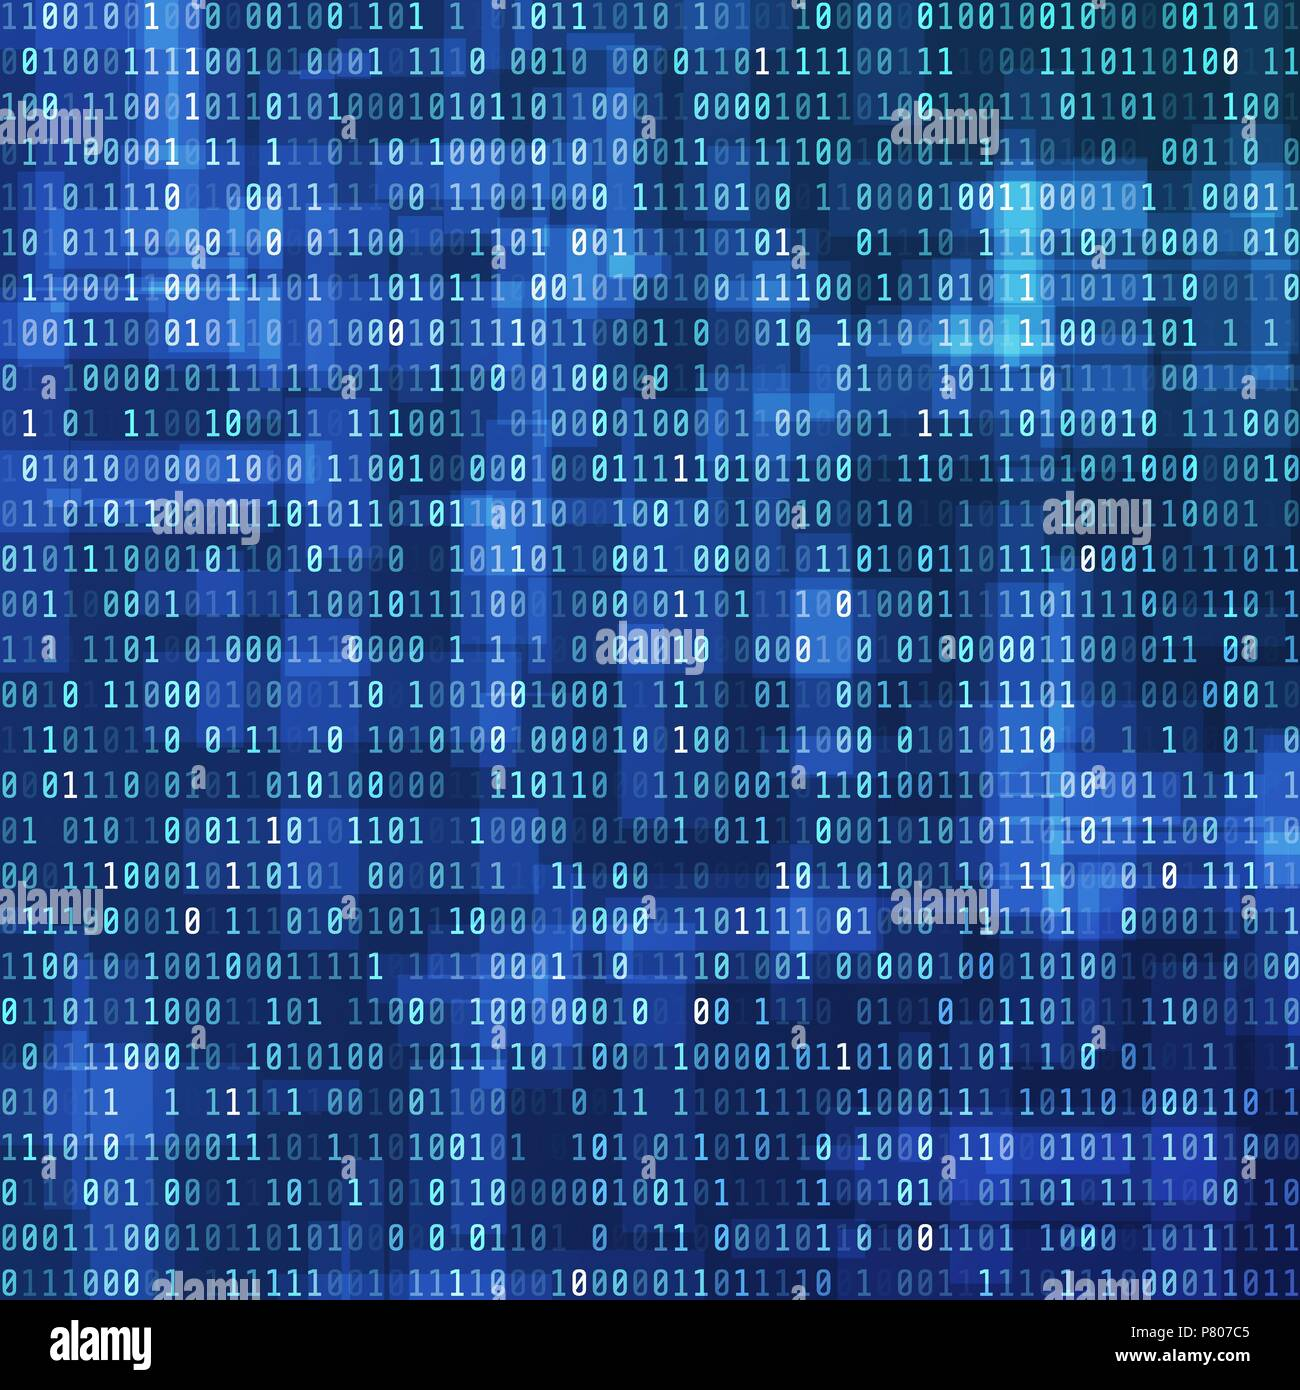 Binary computer code. Digital data view. Technology background design. Binary Data Stream. Vector illustration - Stock Image